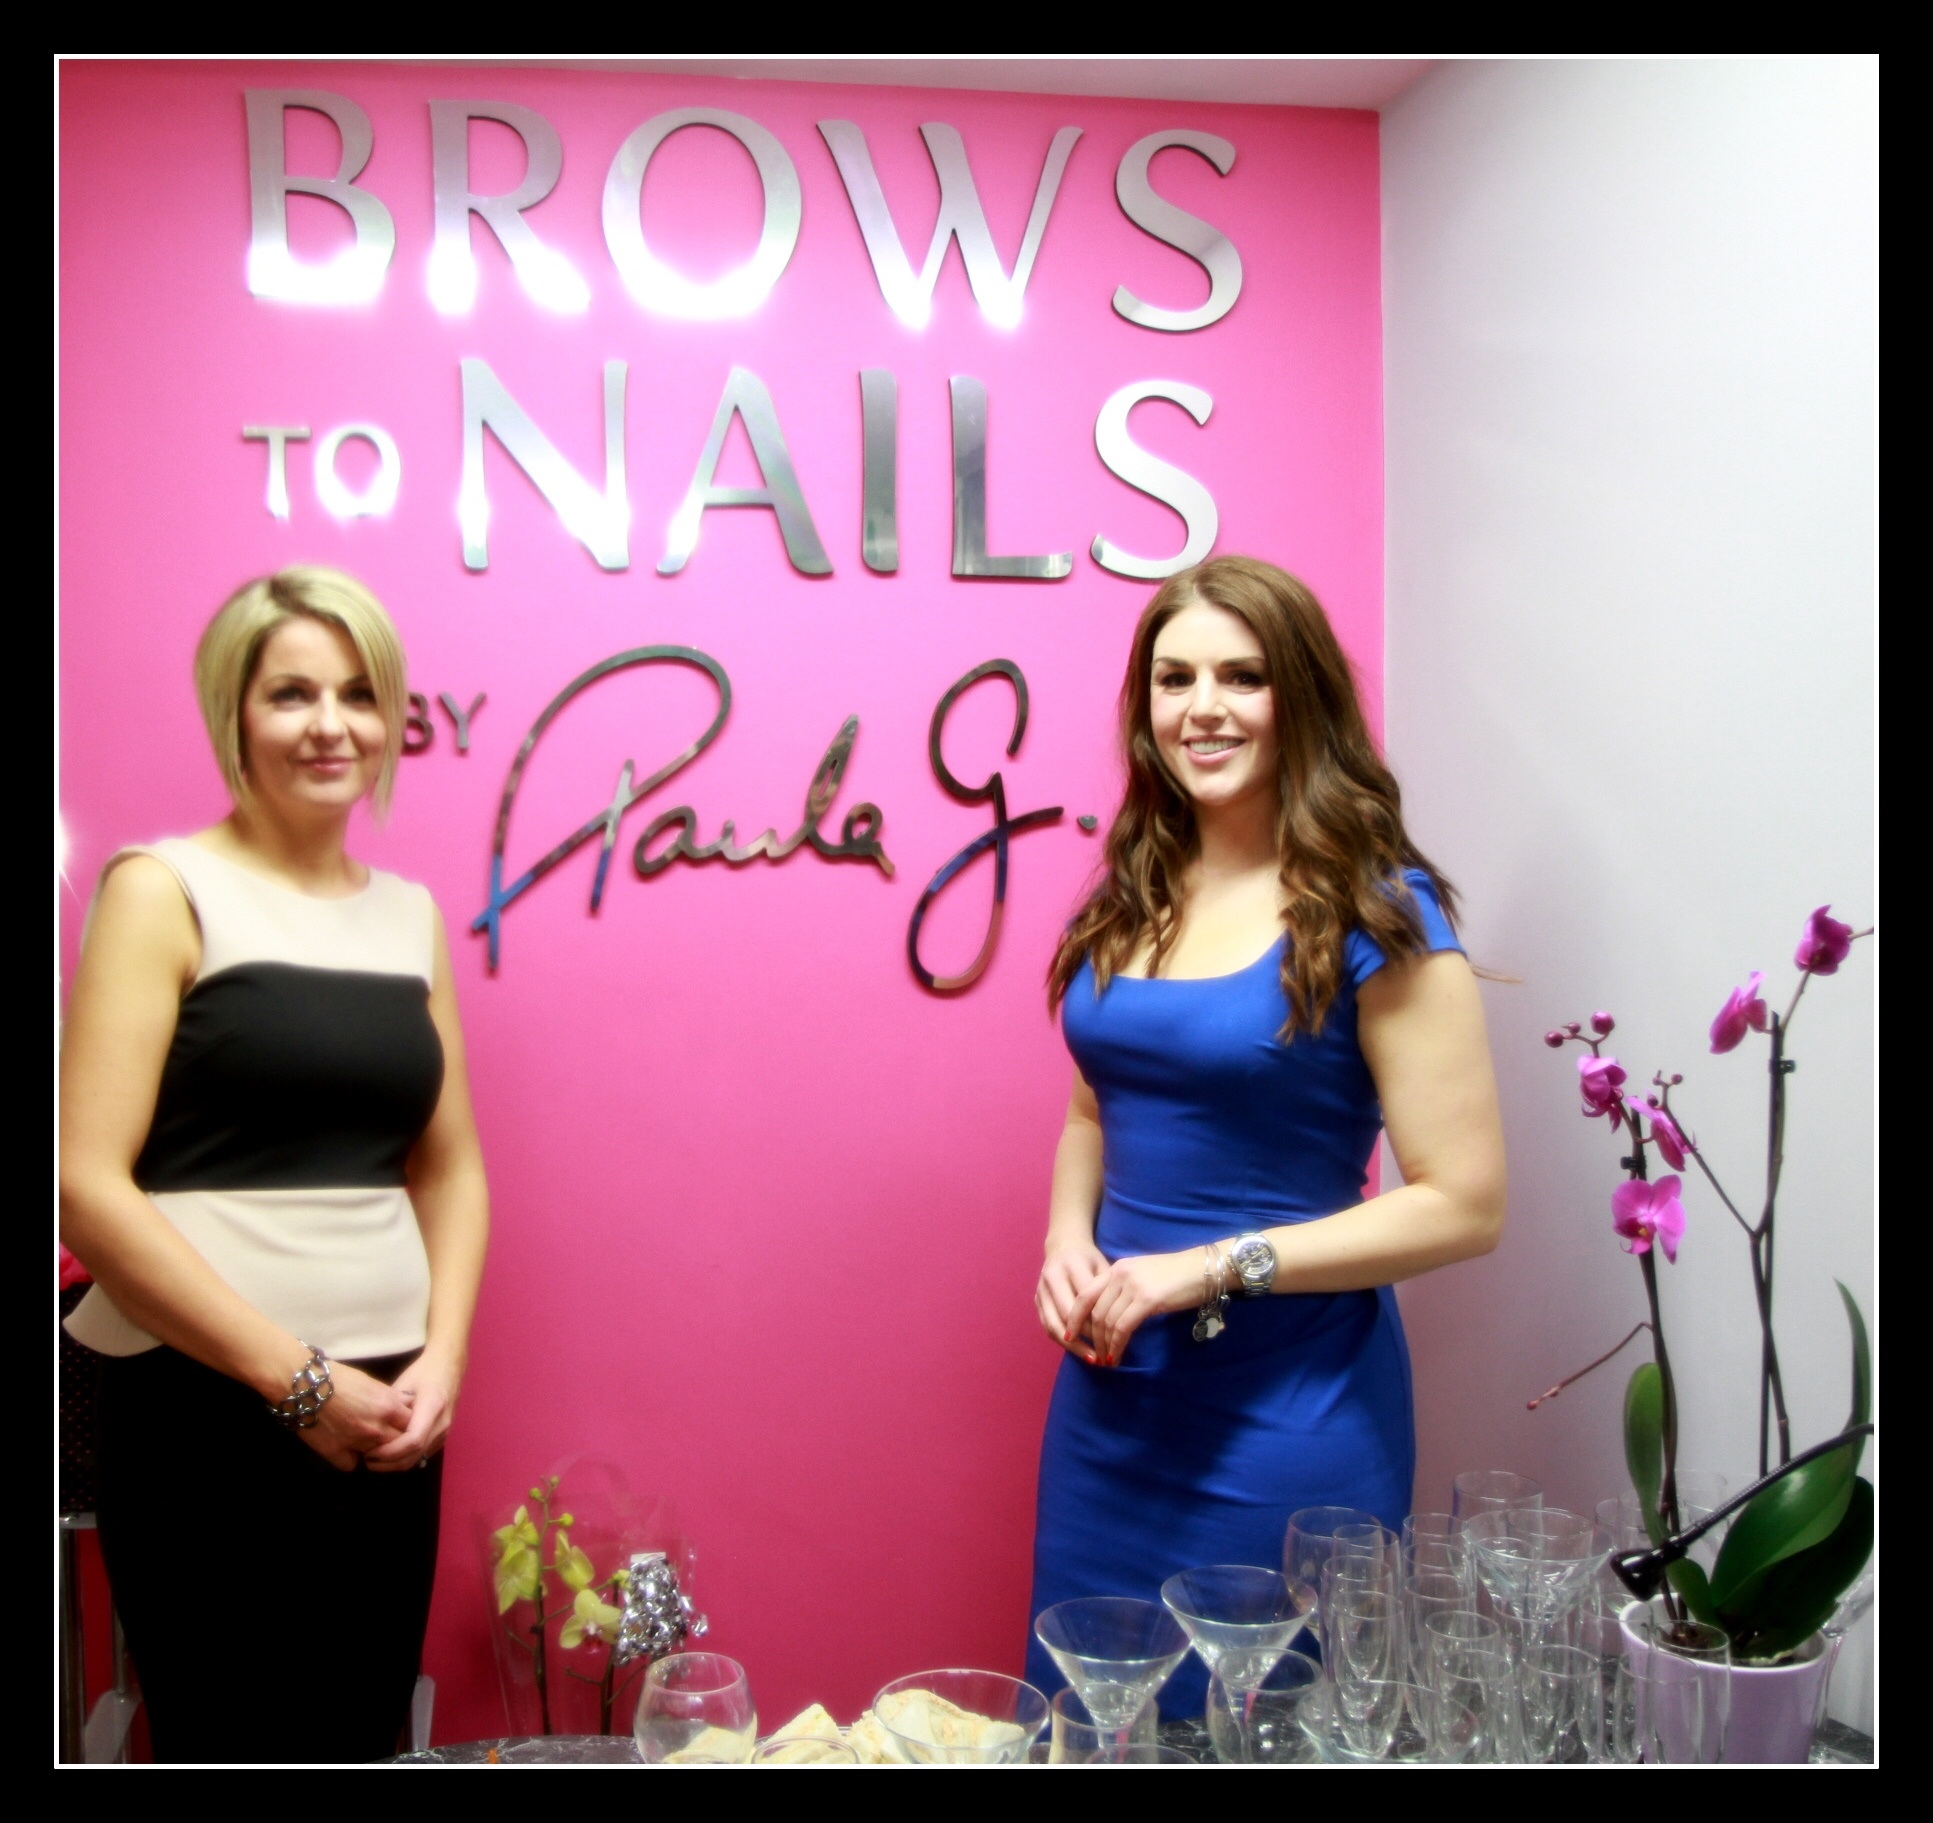 Paula Glynn with Sile Seoighe at the official opening of Brows To Nails Claremorris